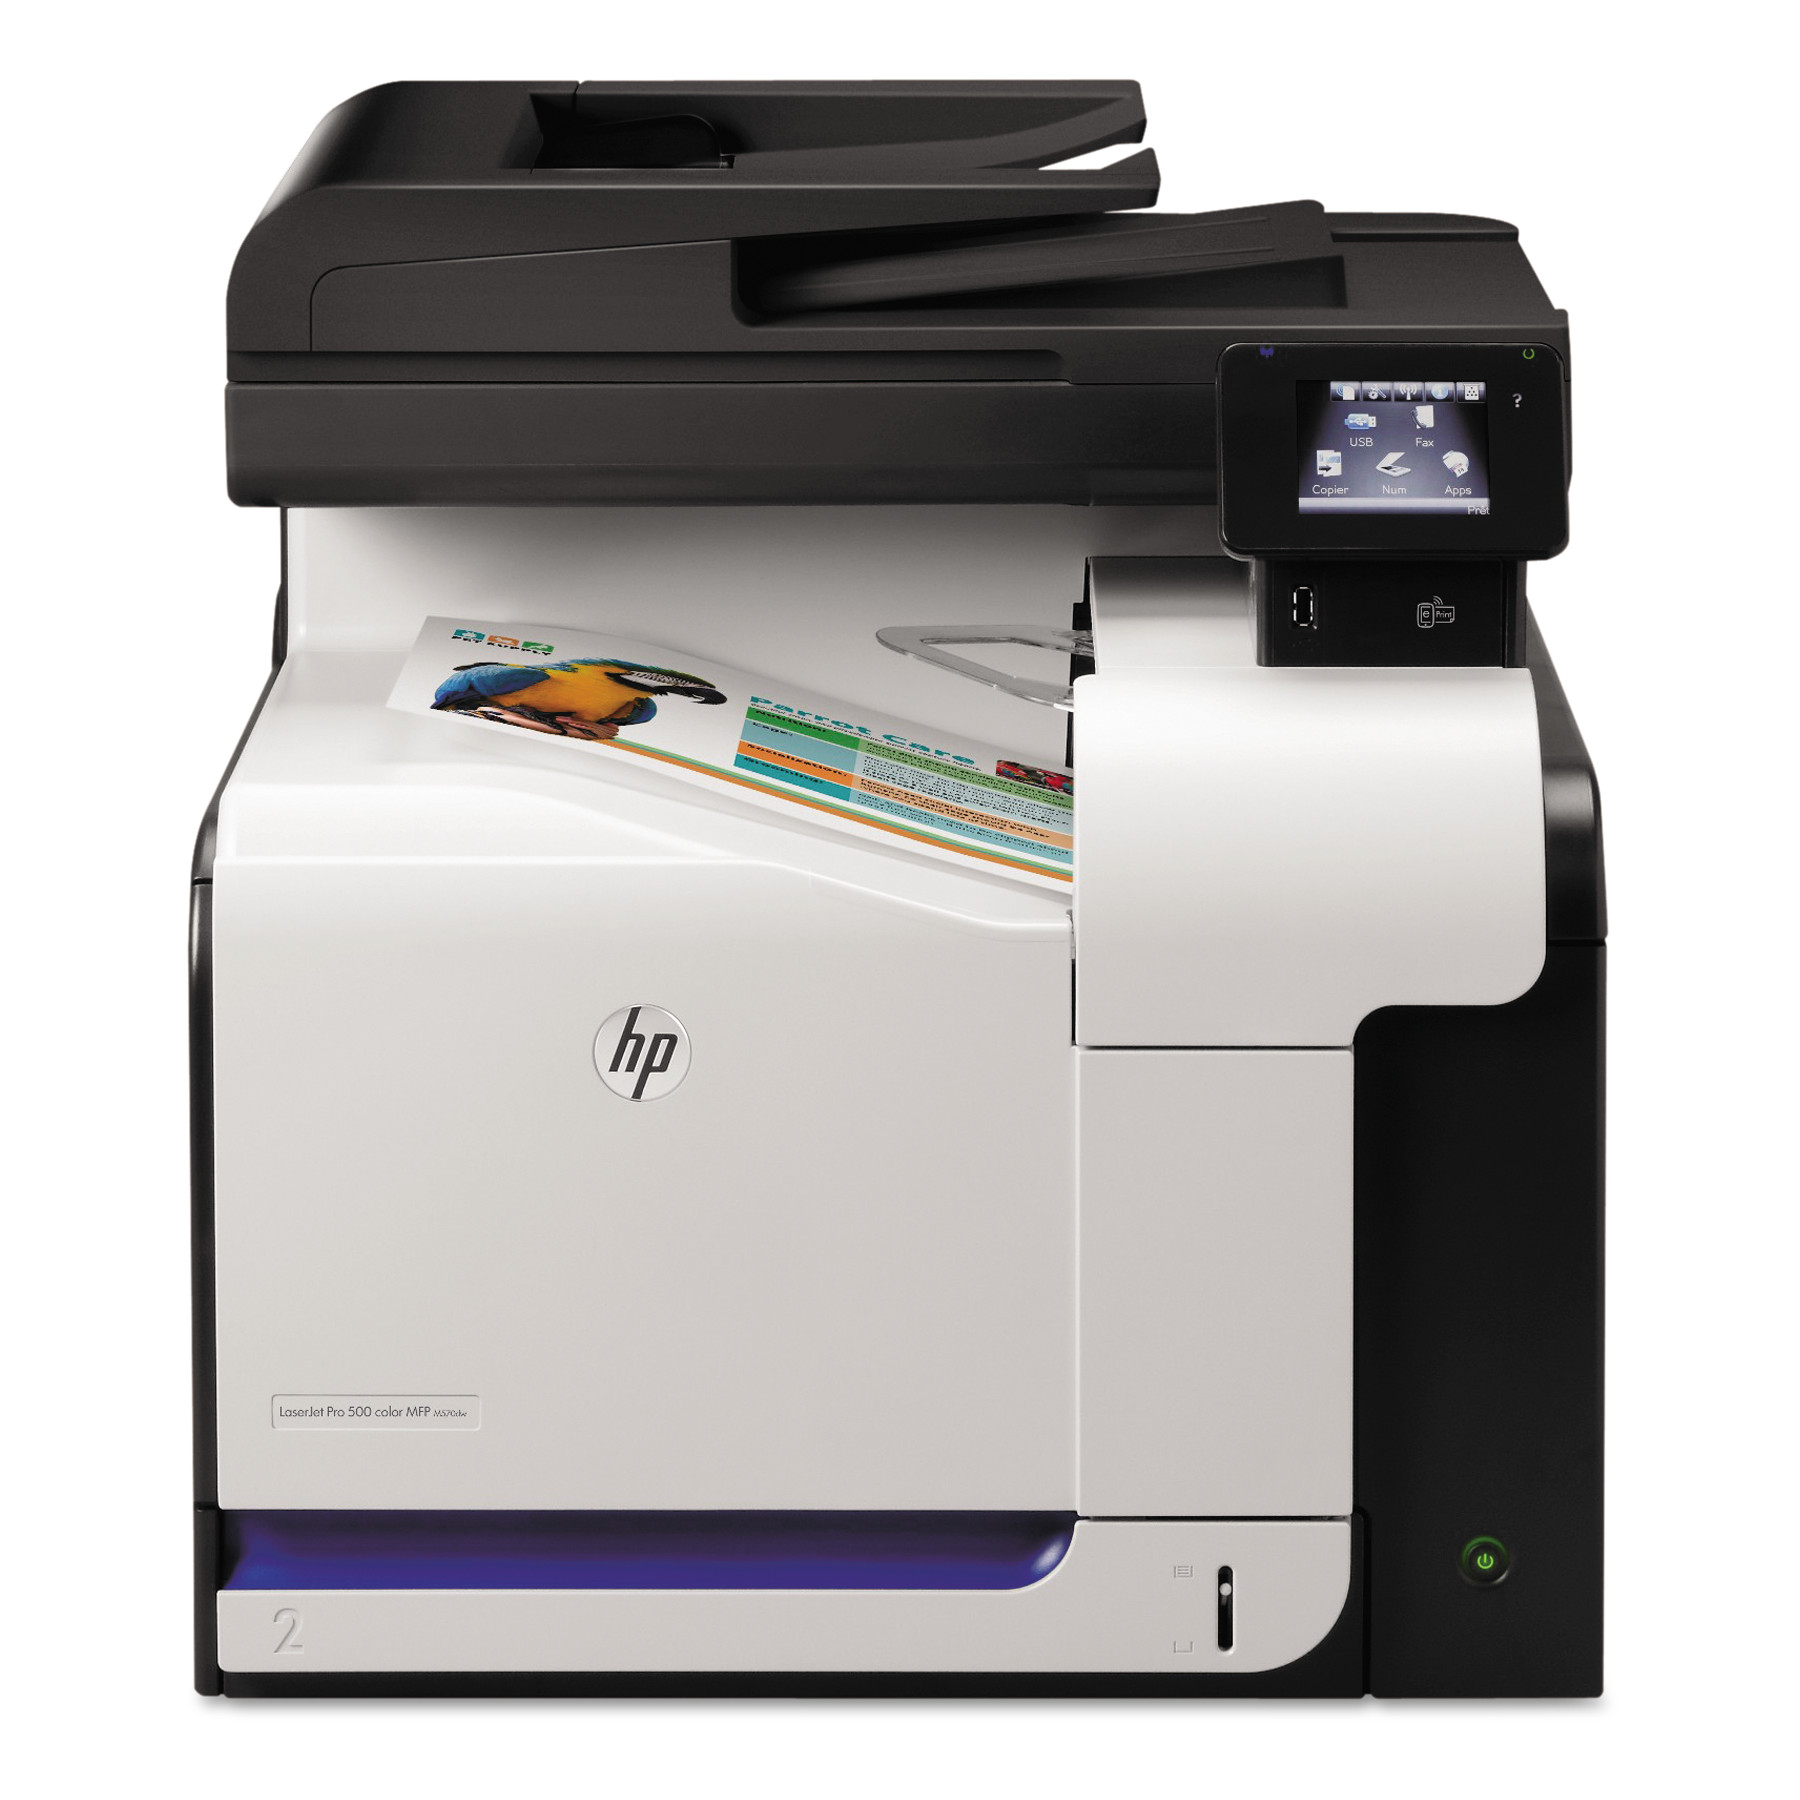 HP LaserJet Pro 500 Color MFP M570dn Laser Printer, Copy/Fax/Print/Scan -  Walmart.com